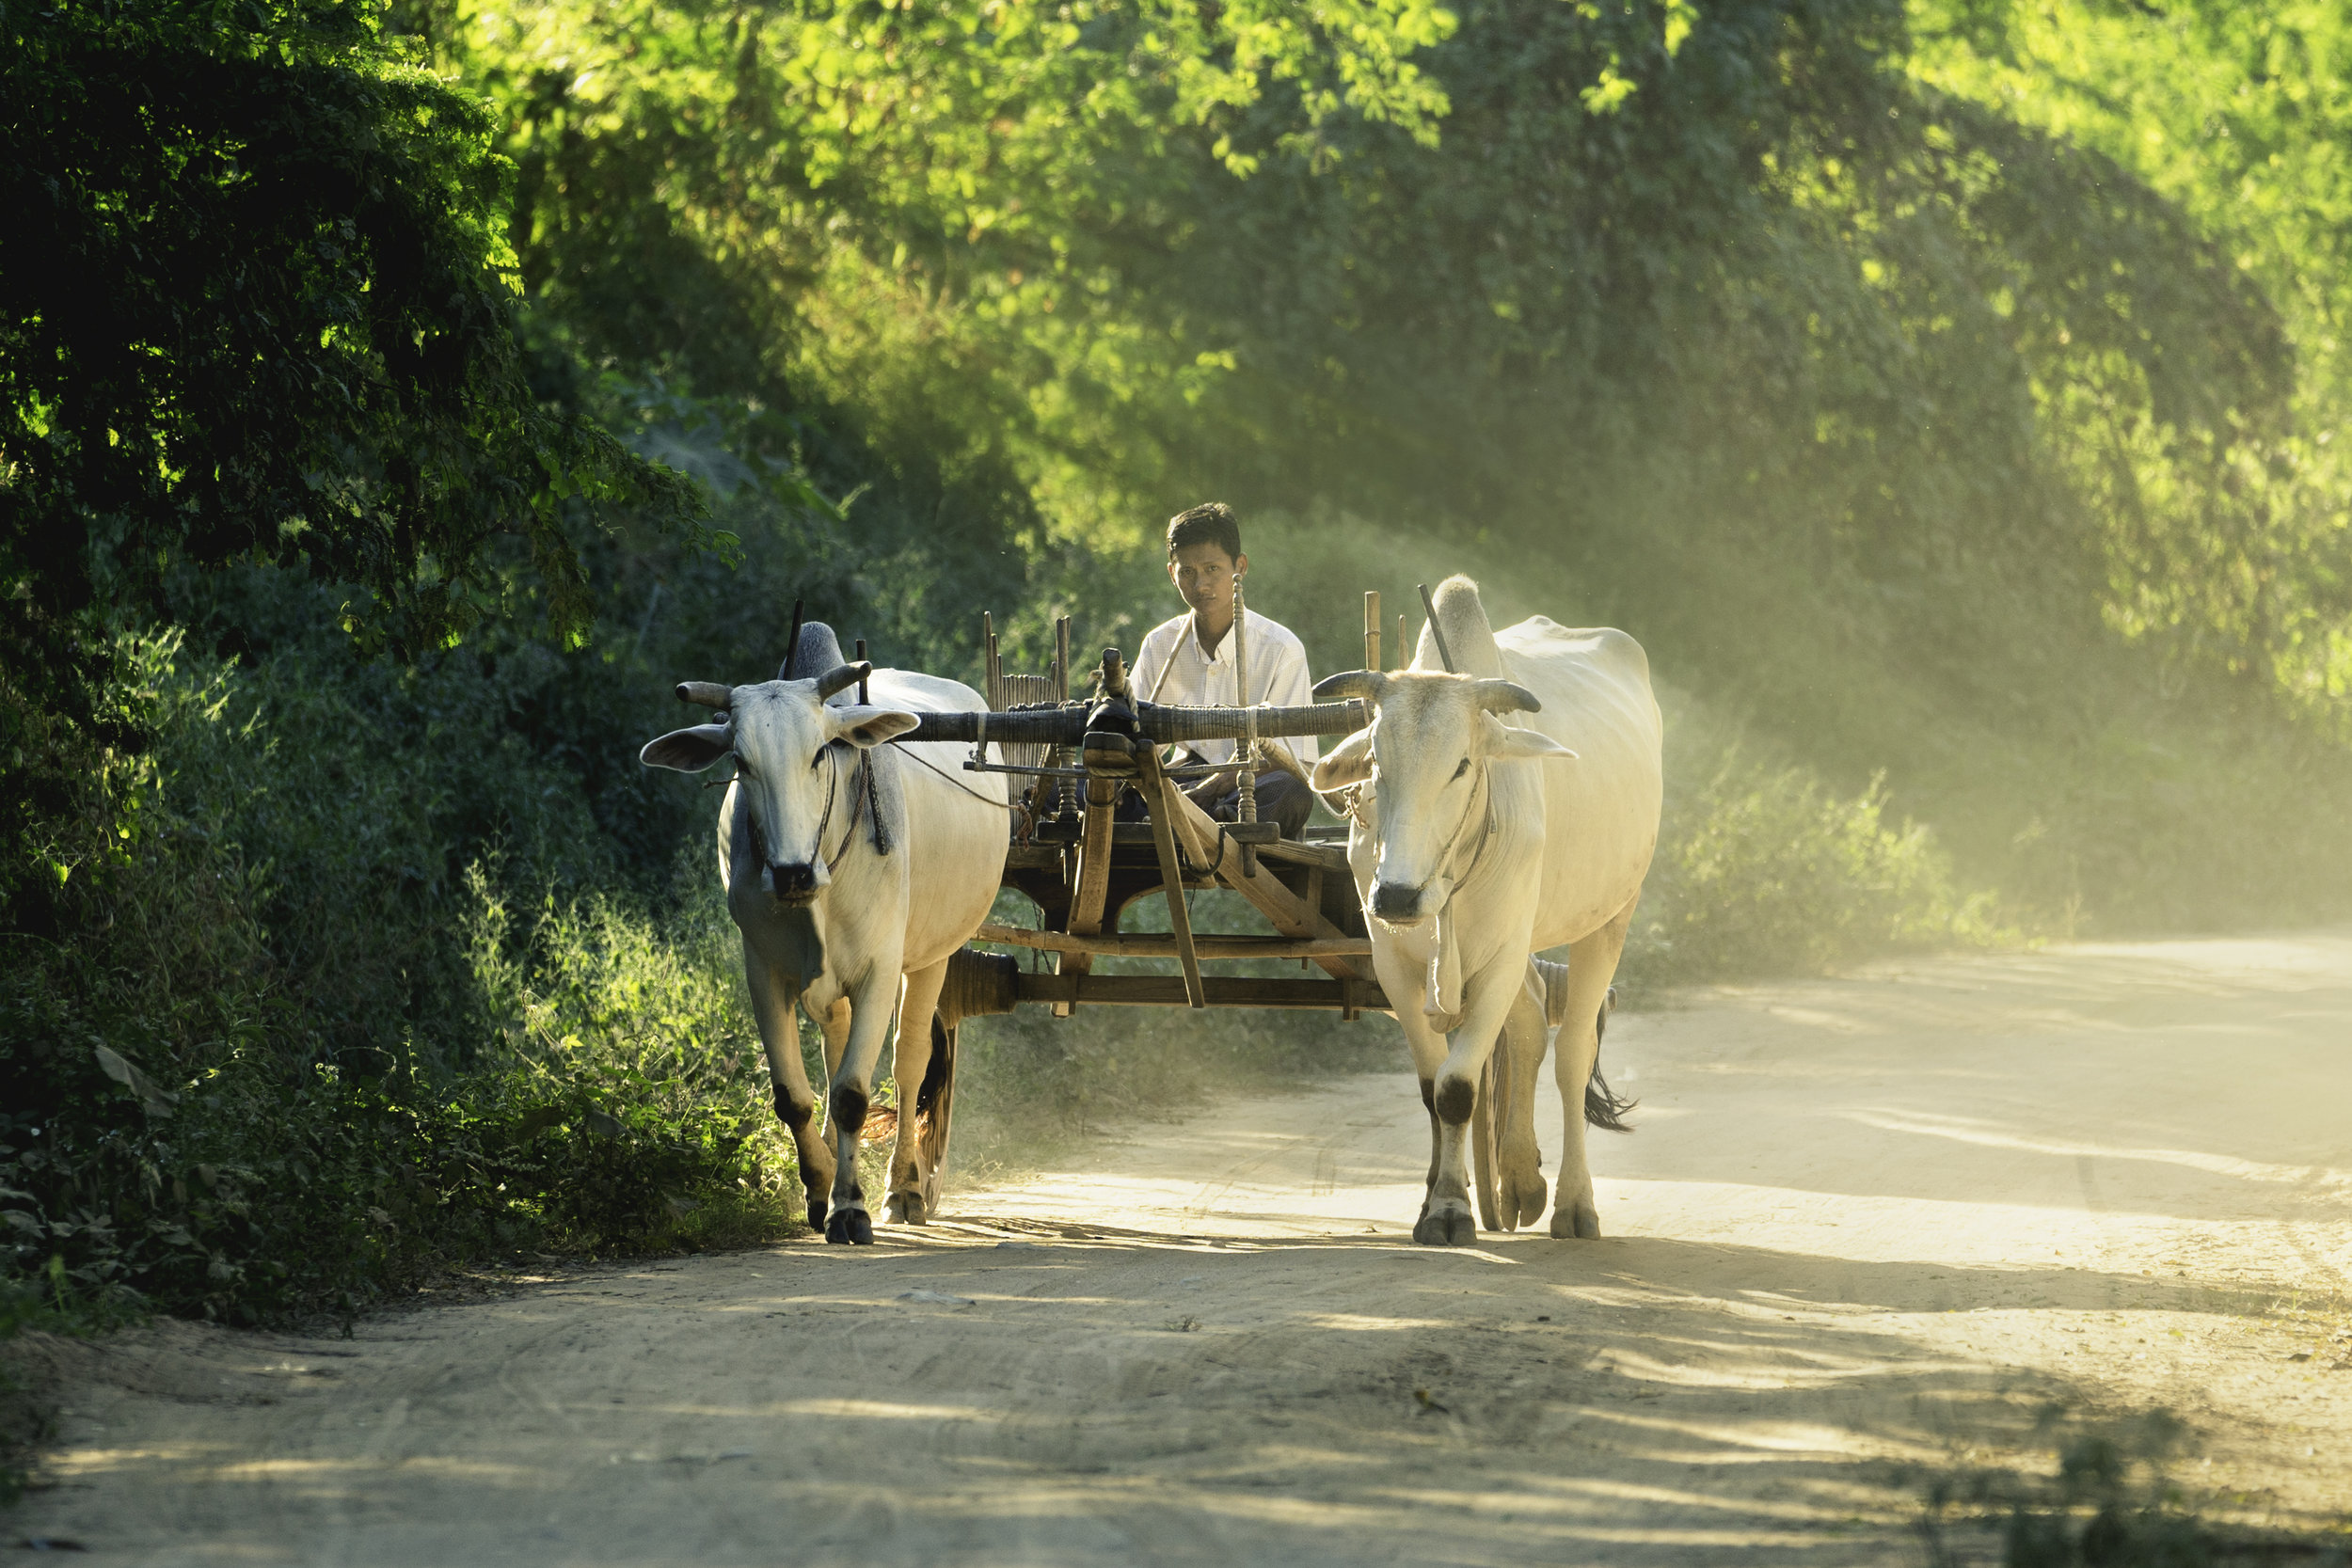 People of Bagan.  A villager coming home on an oxcart.